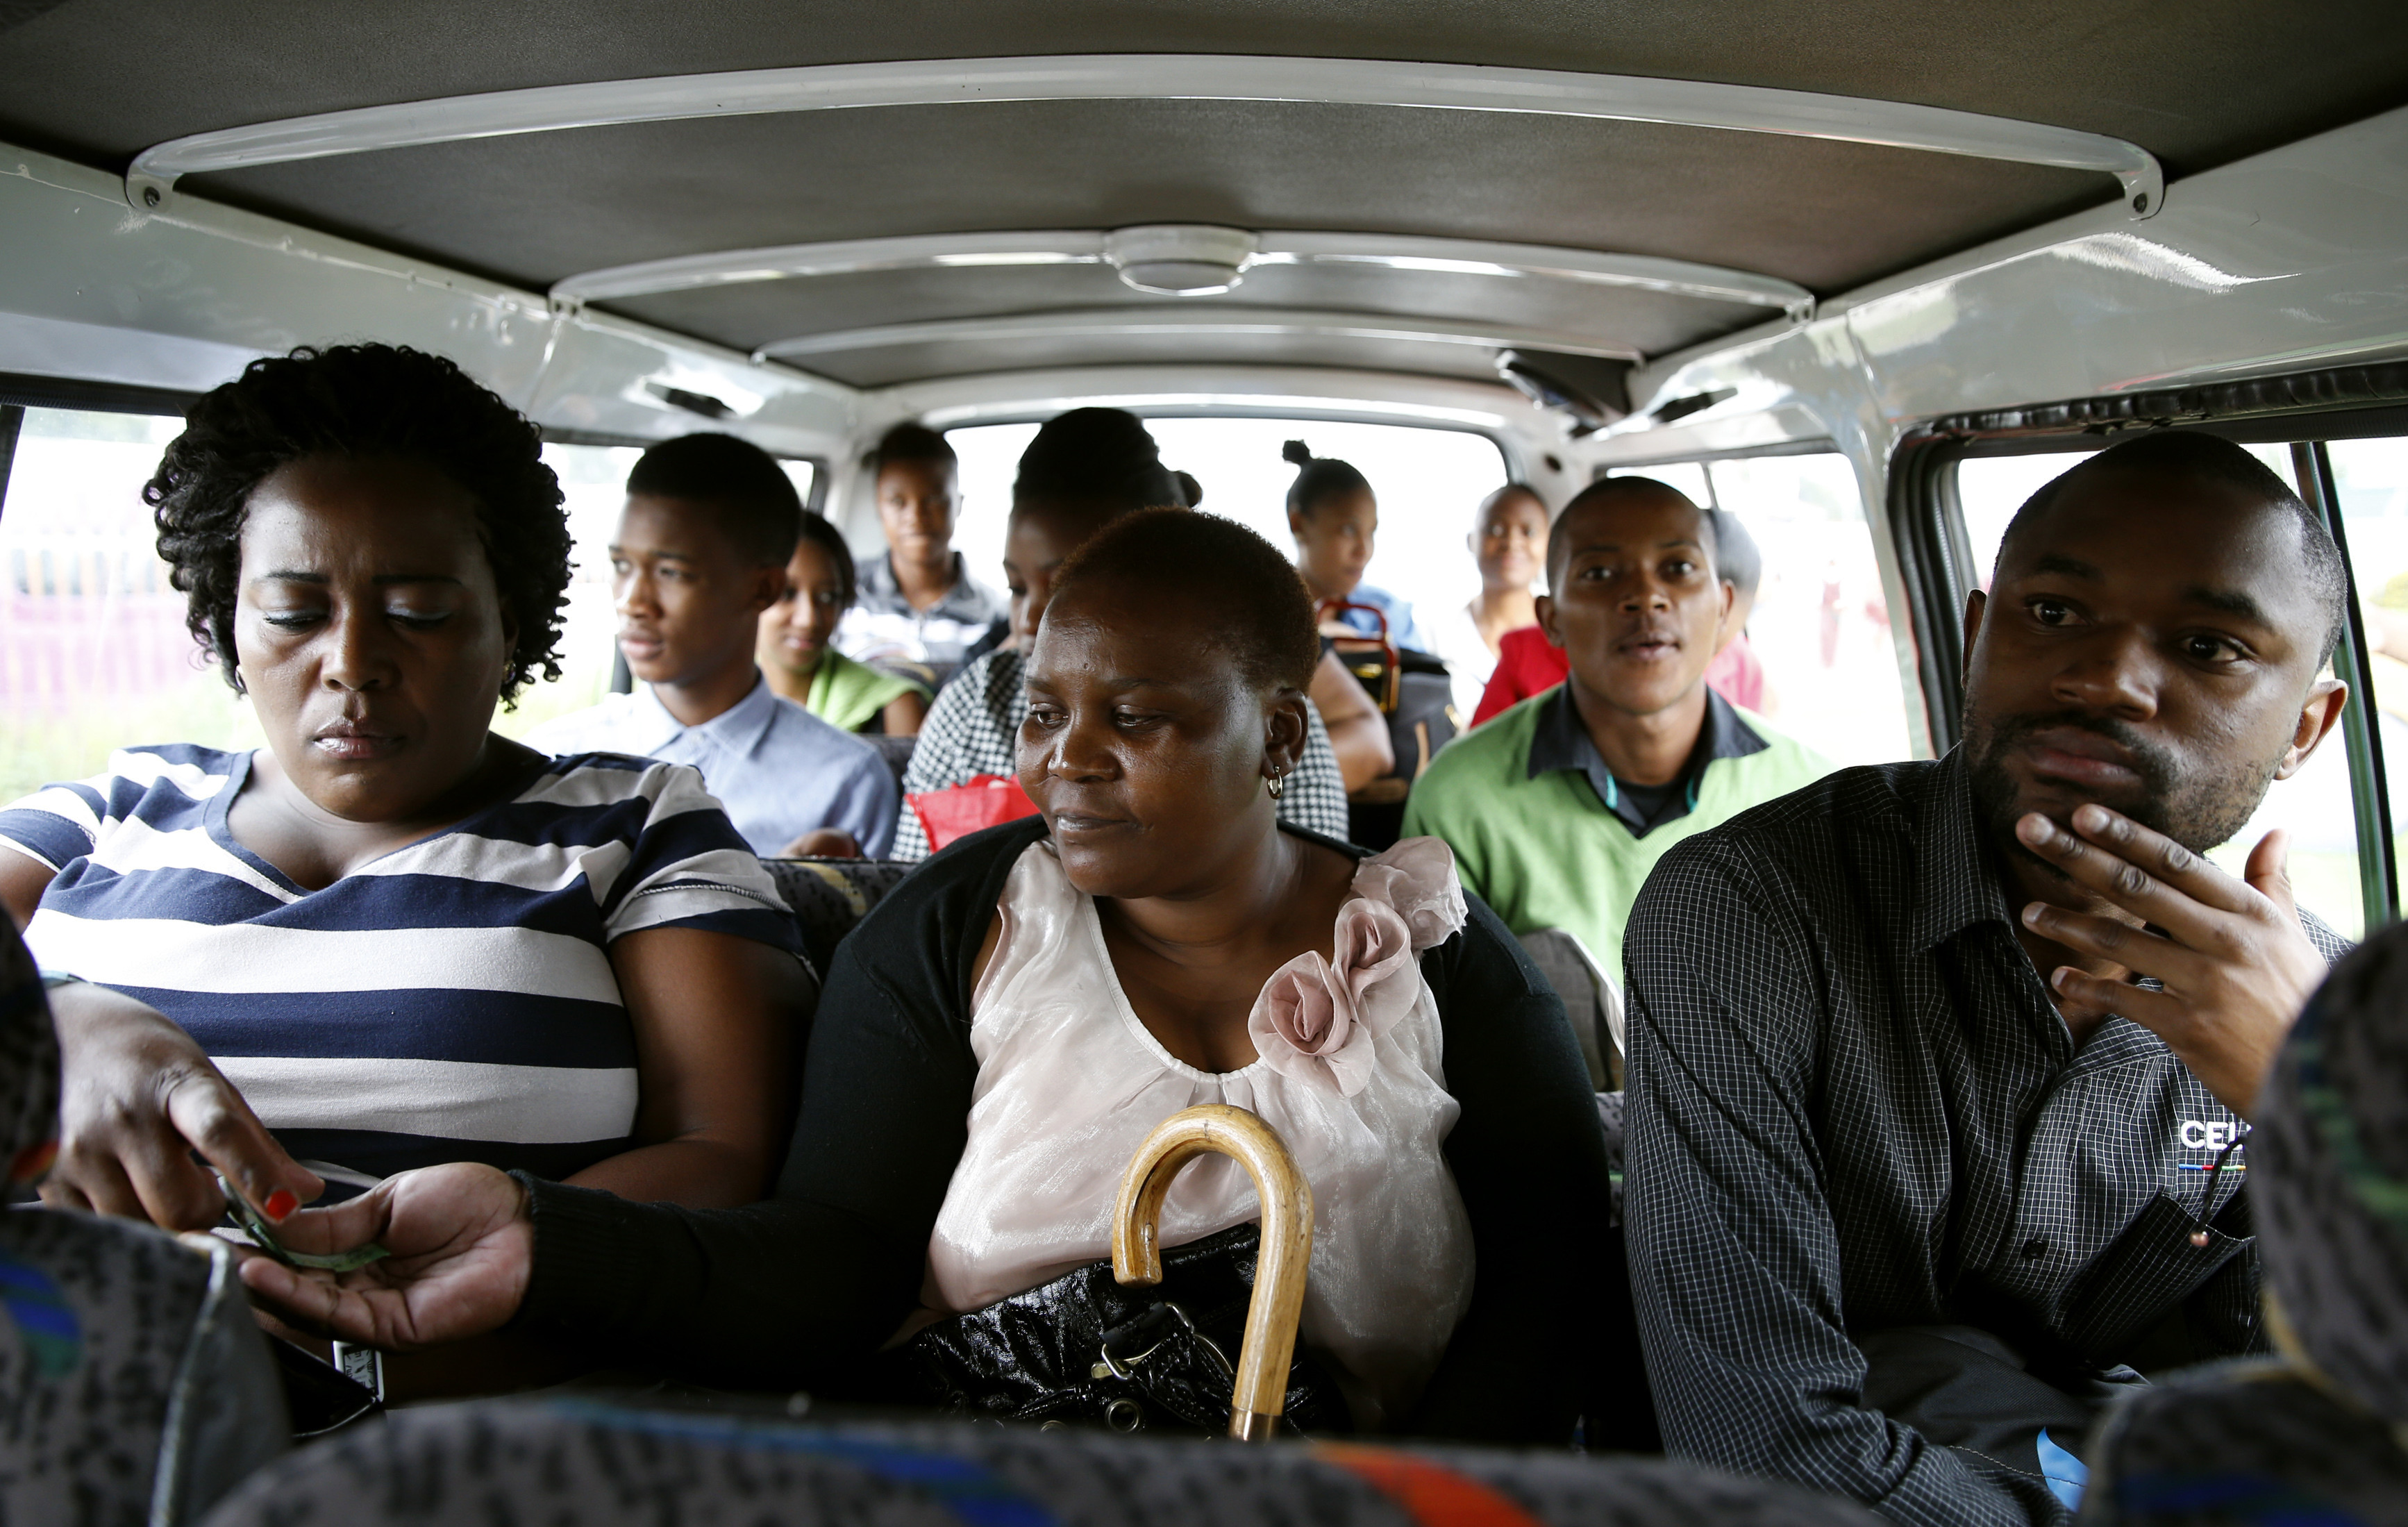 Passengers pass their fares to minibus taxi driver Zakes Hadebe as they commute from Soweto township to central Johannesburg February 21, 2014. South Africa's minibus taxi industry, scorned by other motorists for reckless driving and dogged by a reputation for violence, moves 15 million people every day, most of them lower income blacks. More like buses than the taxis of New York or London, the rumbling 16-seaters are the wheels of Africa's largest economy. Picture taken February 21.